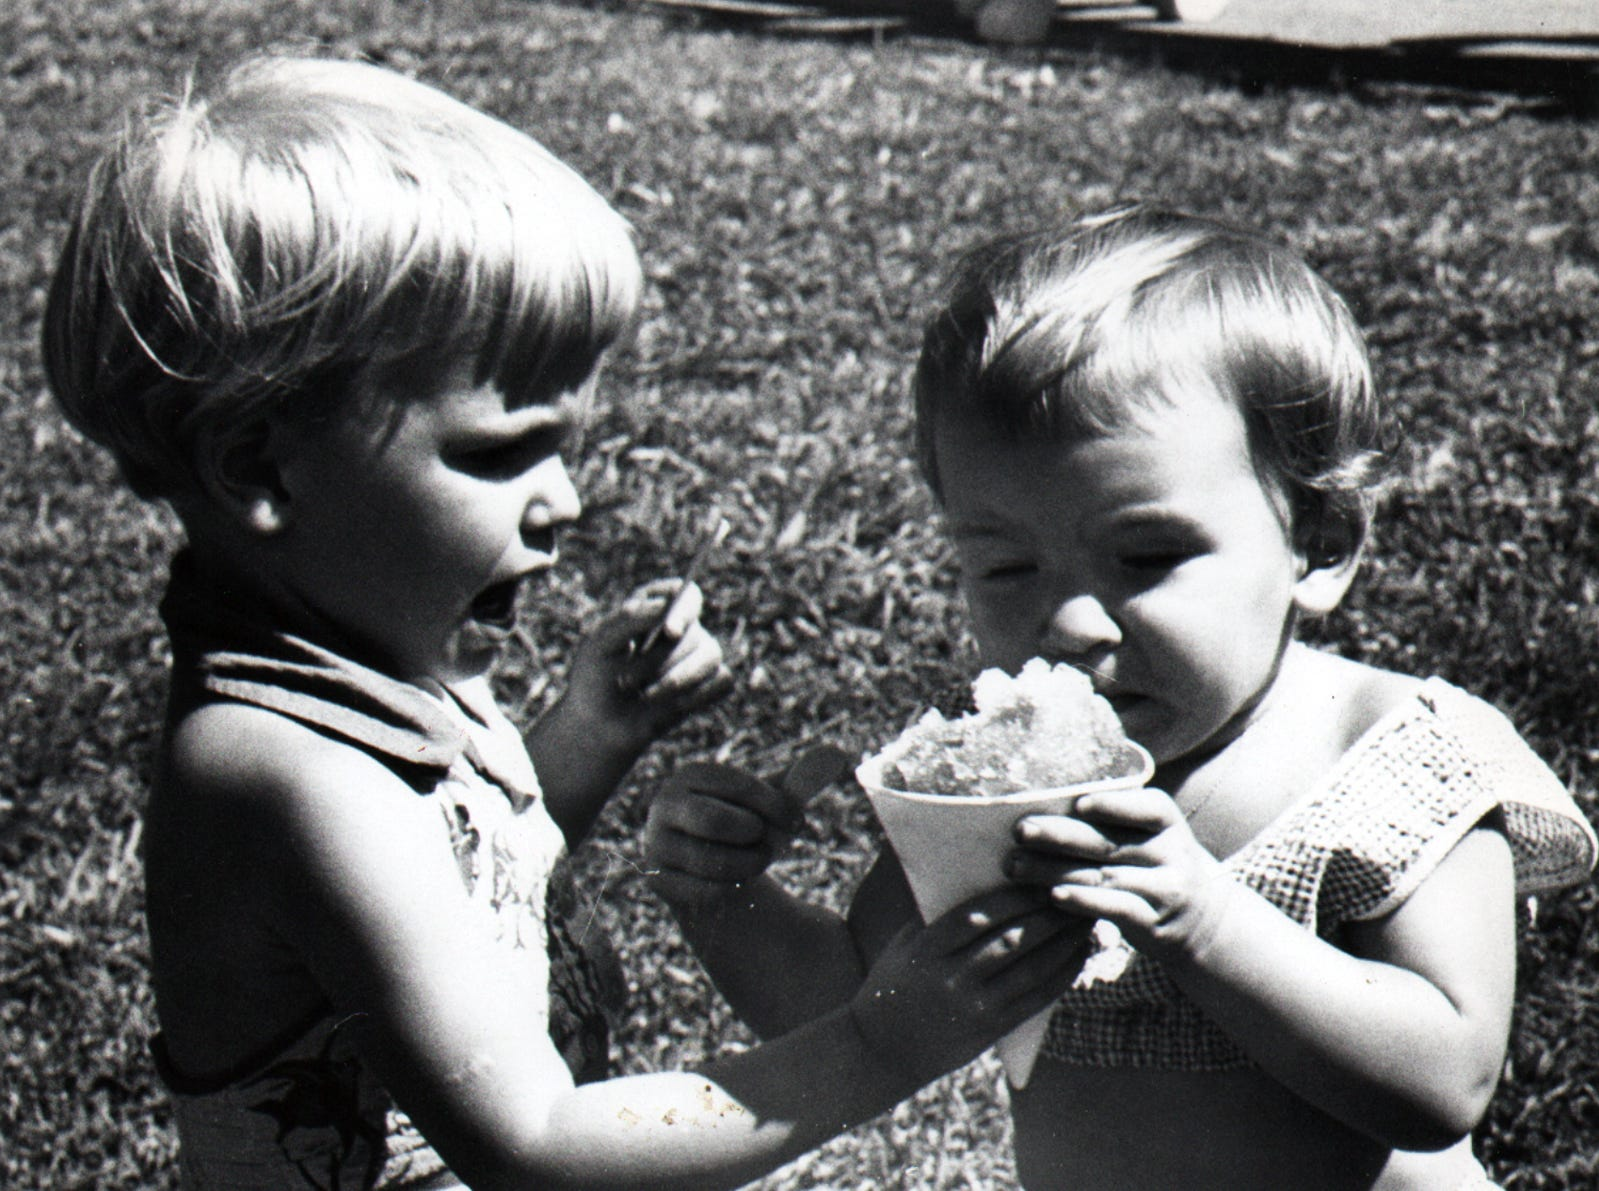 Children enjoy a snow cone during warm weather.